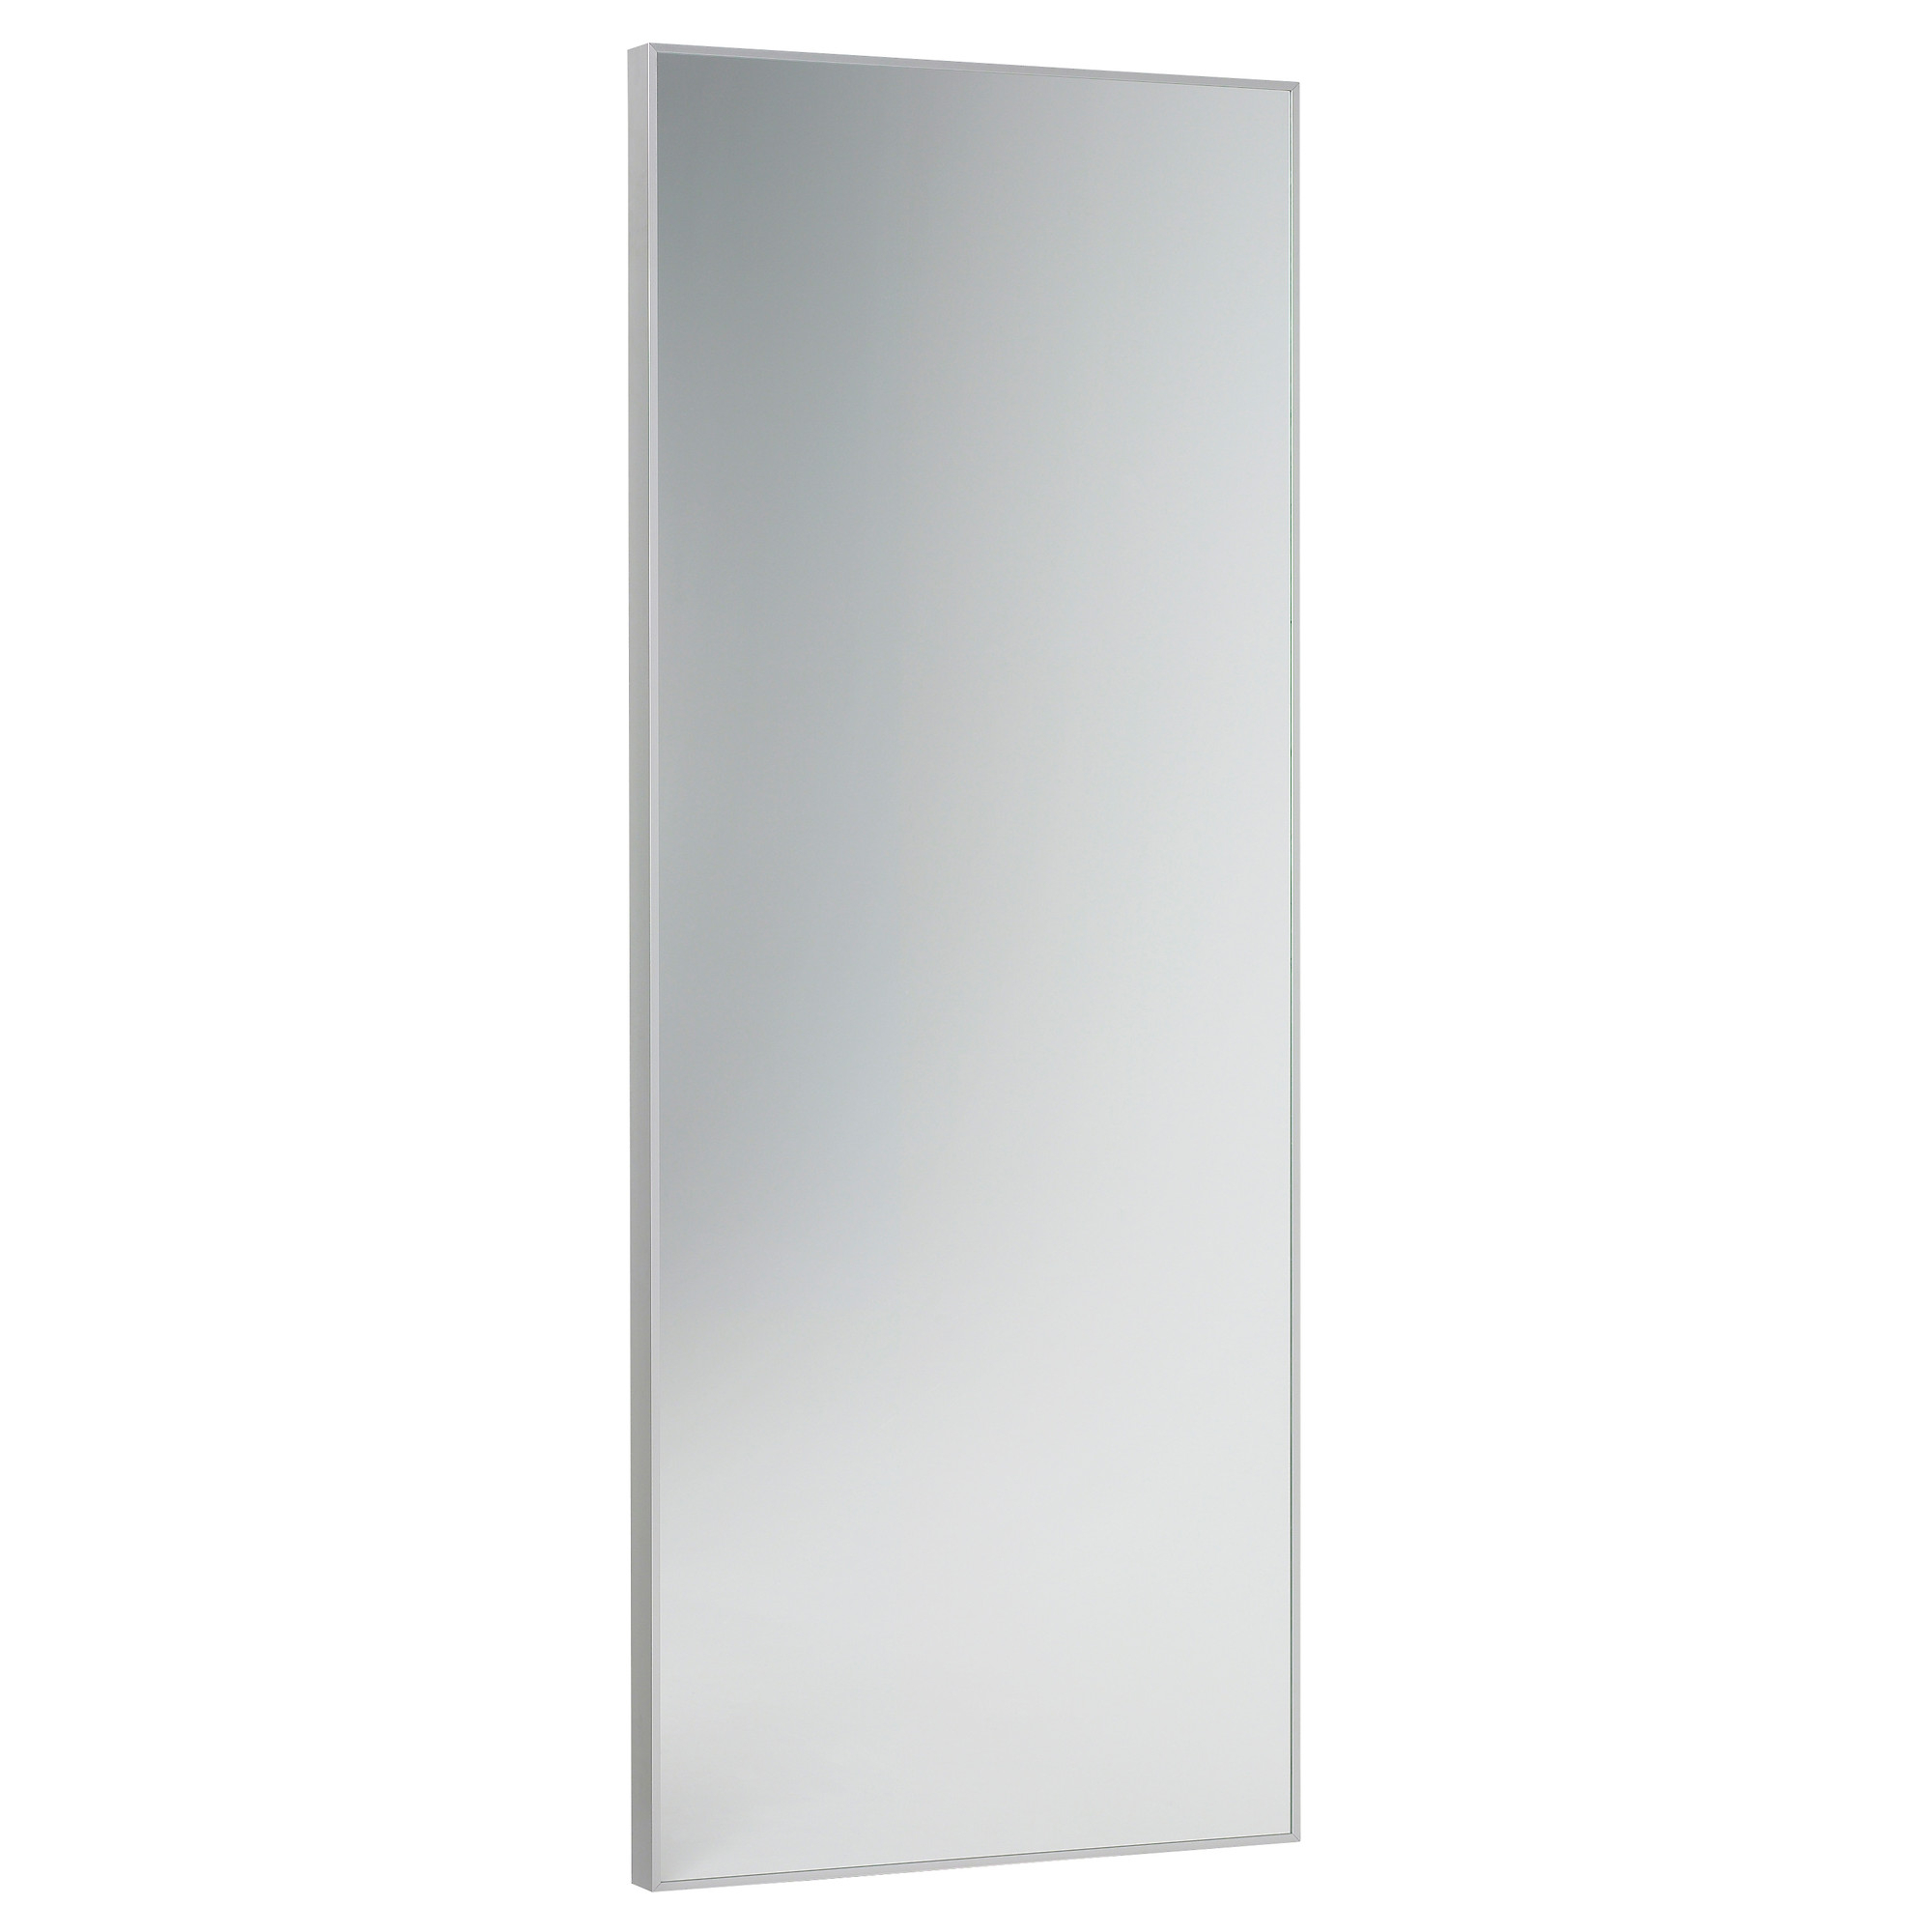 Trendy Decor: Sophisticated Hovet Mirror For Home Design Ideas Inside Ikea Long Wall Mirrors (View 17 of 20)